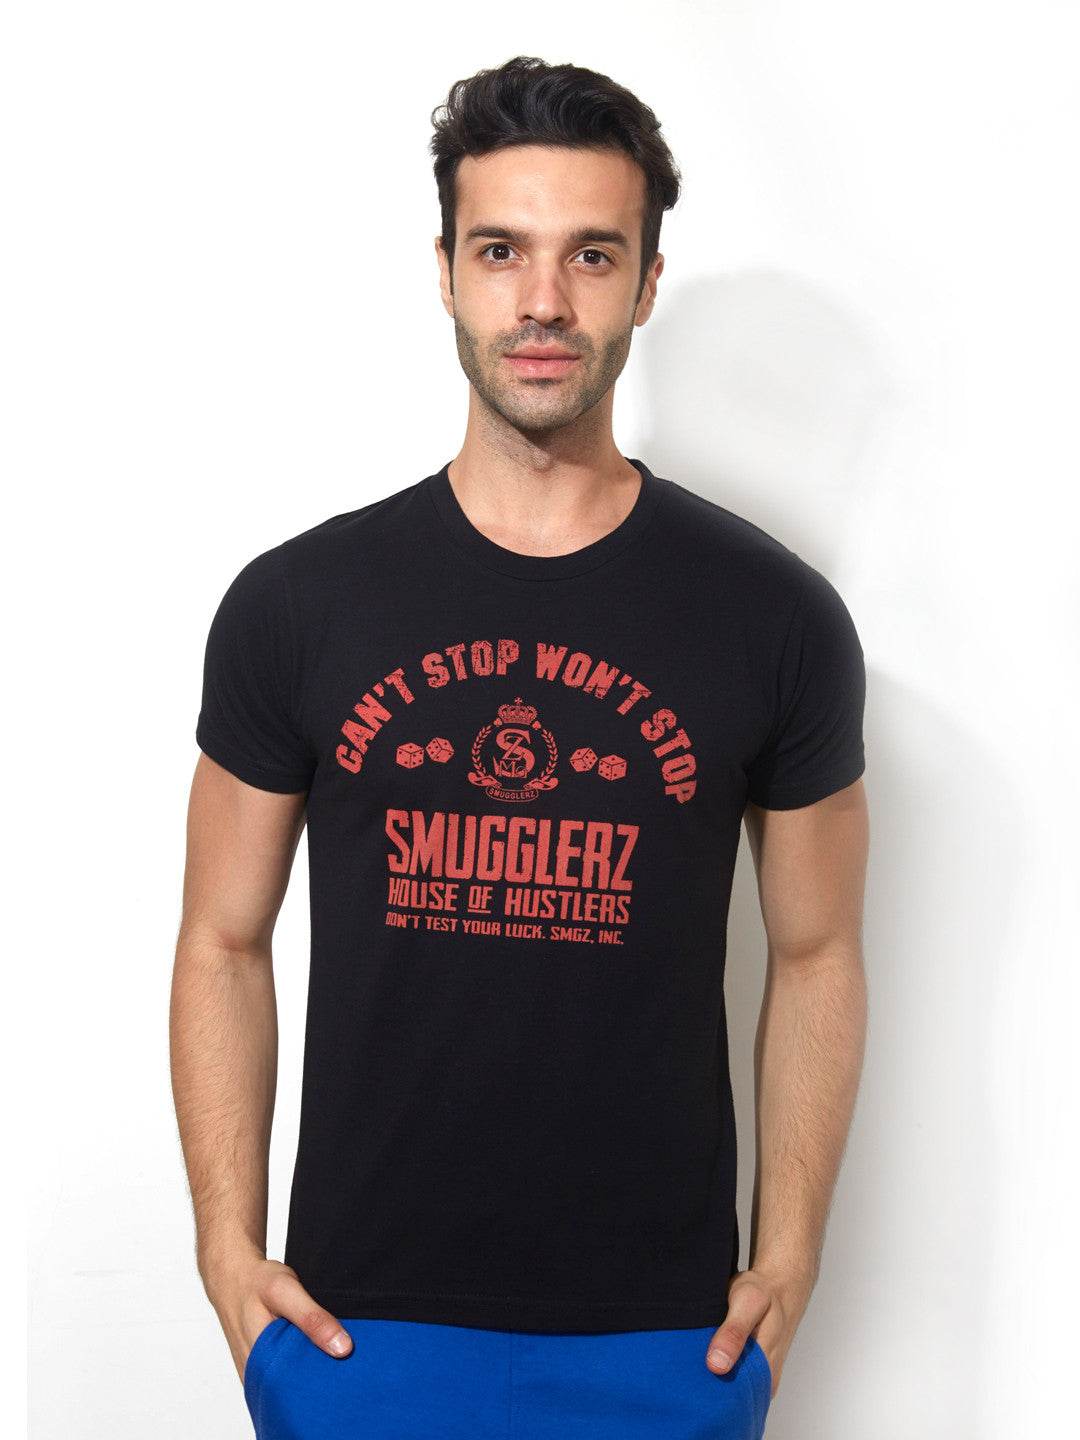 7ee8bdc56 Smugglerz Inc - Can't Stop Won't Stop - Gangsta Fit Tee - Smugglerz Inc.